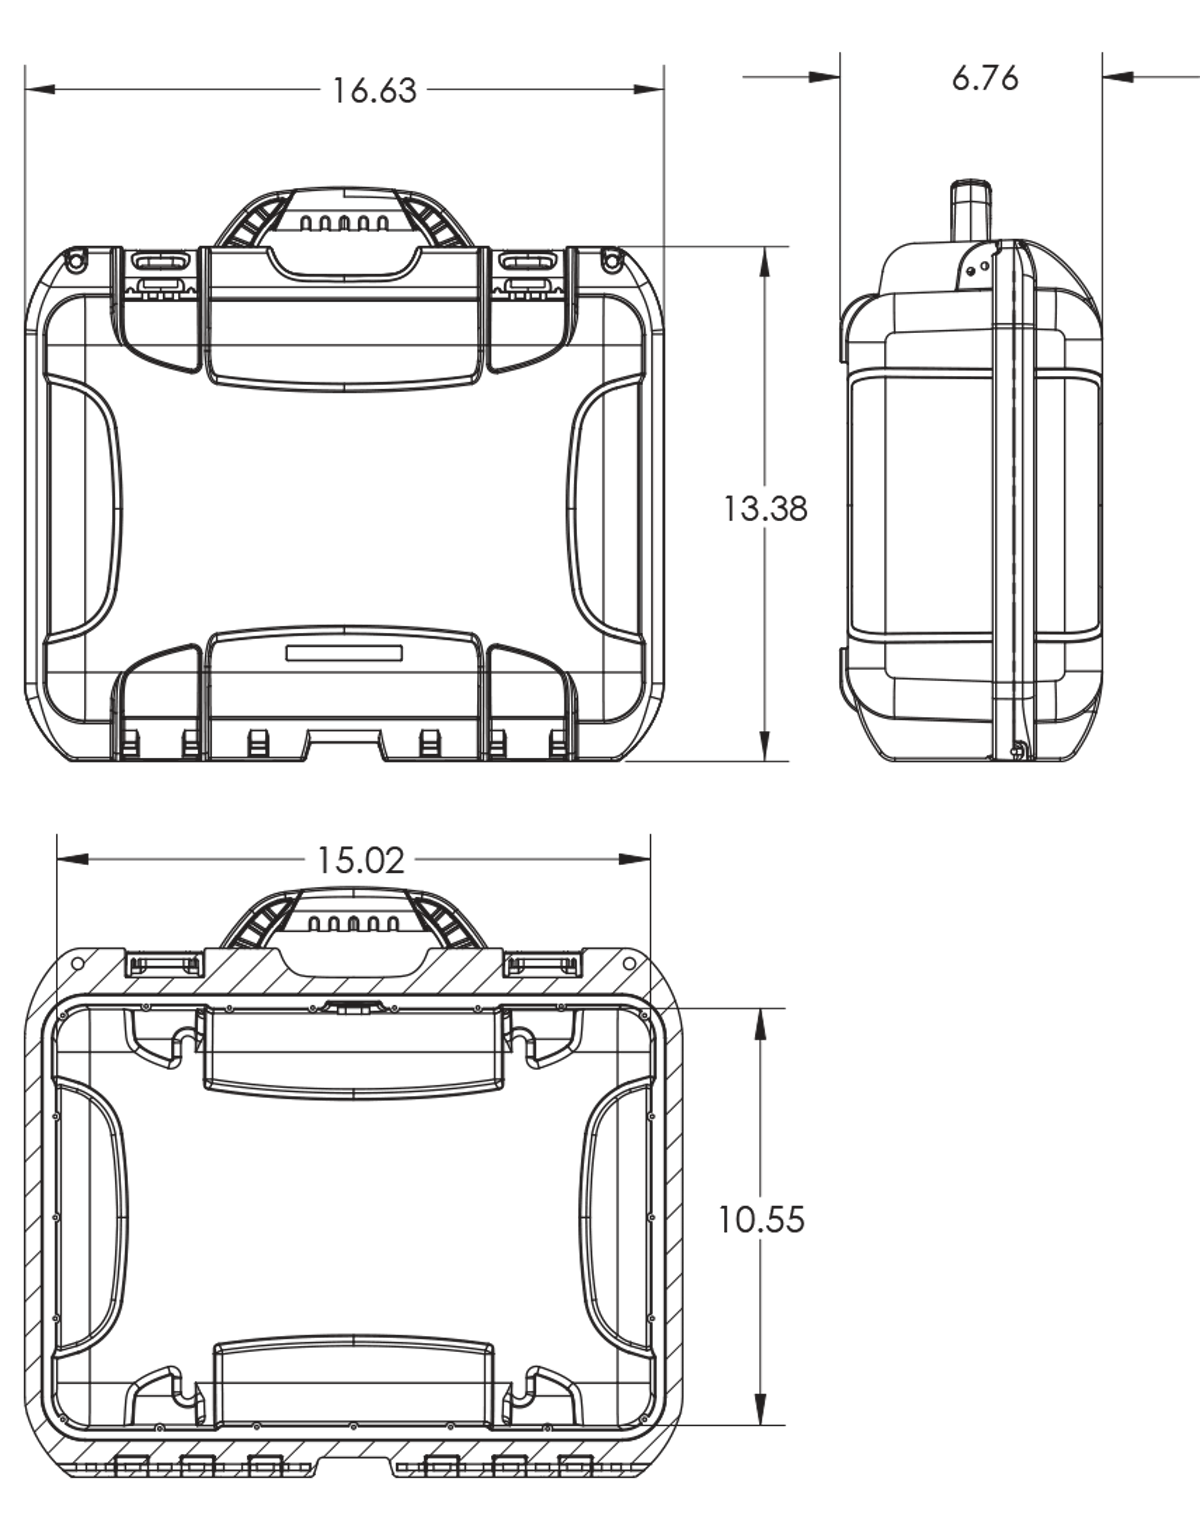 Dimensions of the Nanuk 920 DJI Mavic Pro Case Hard Case